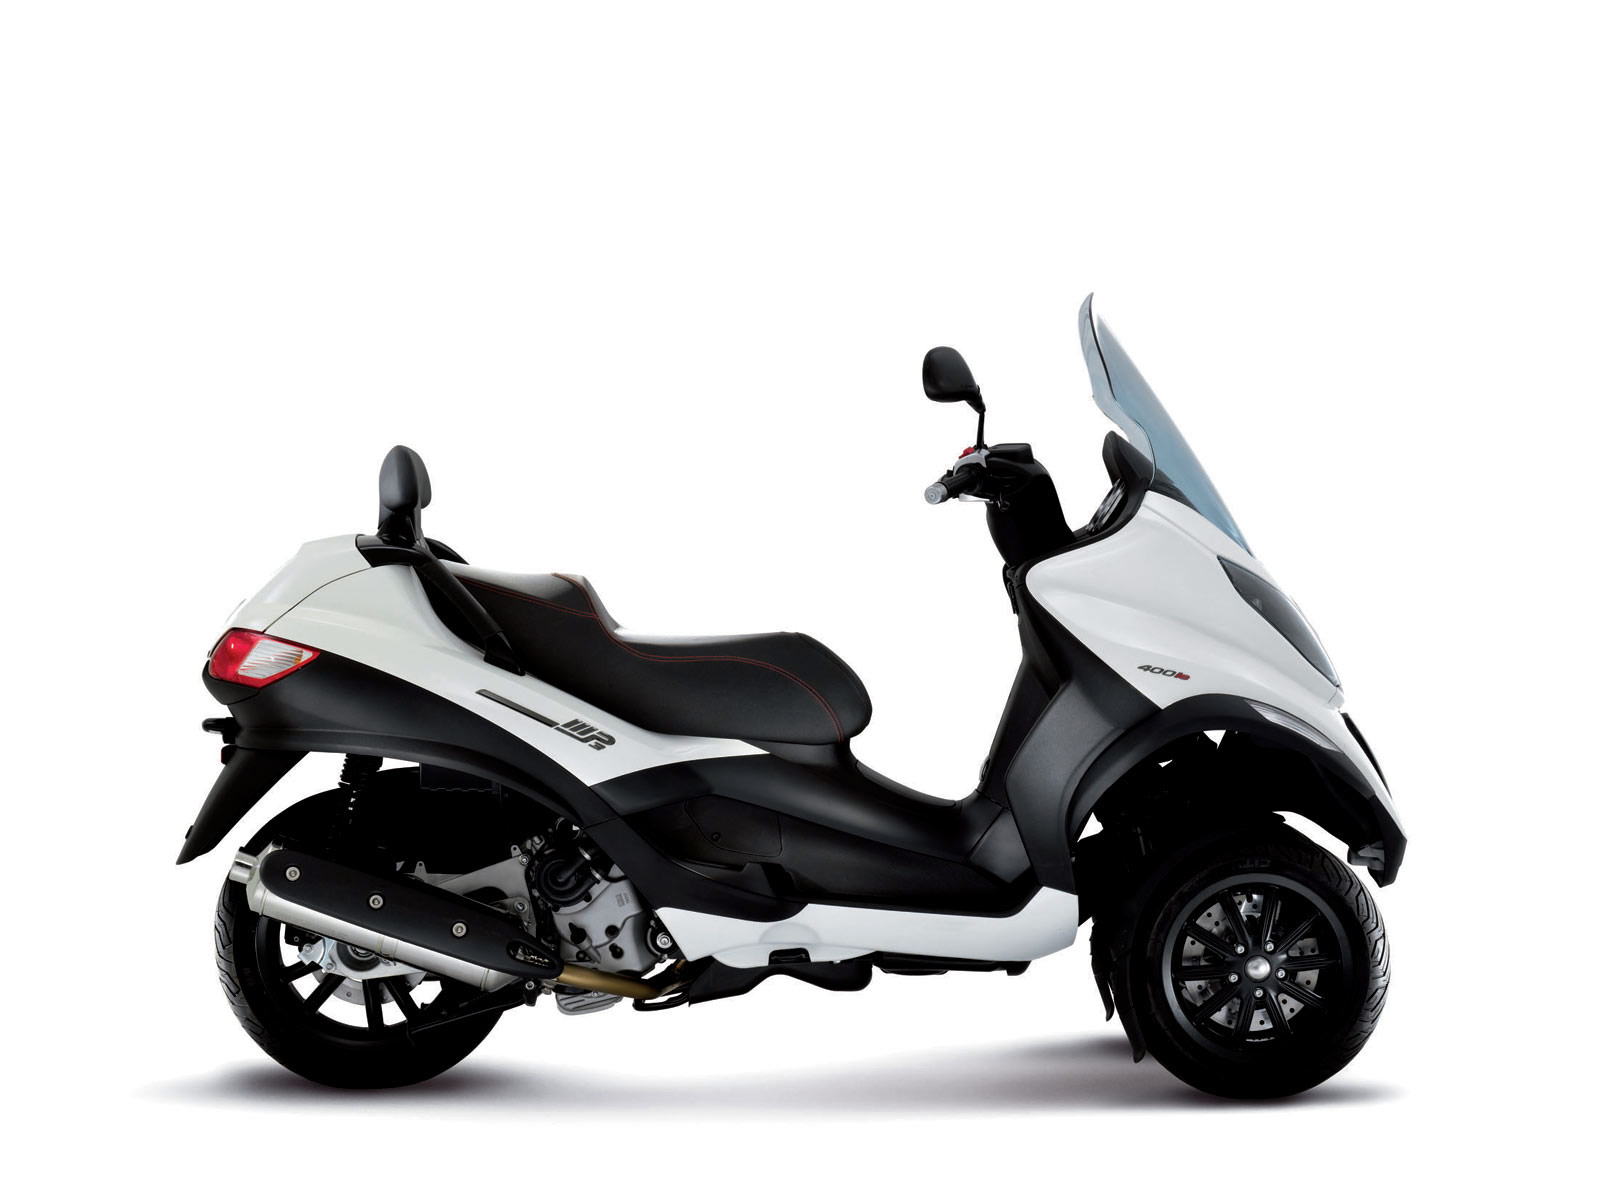 2011 piaggio mp3 400ie sport scooter pictures for Motor scooter 3 wheels